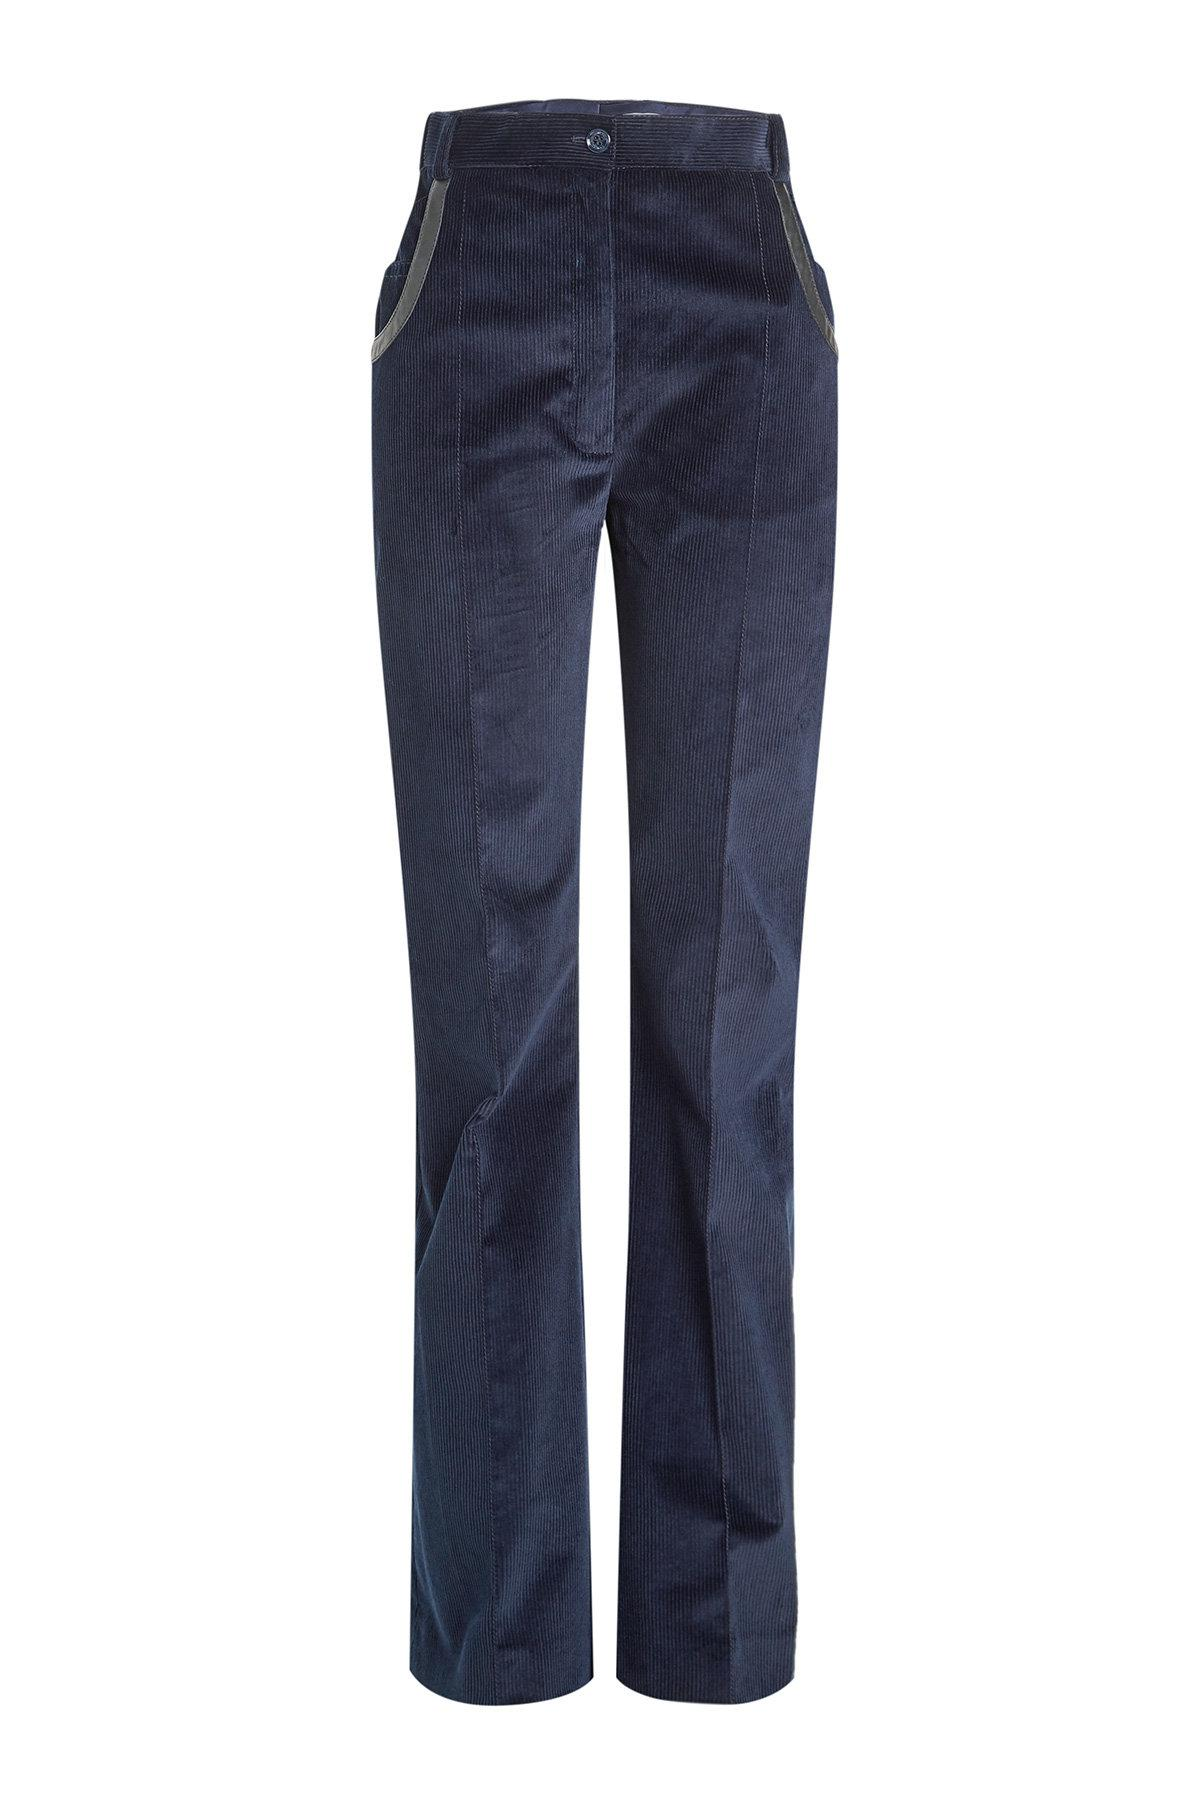 corduroy pants with leather trim